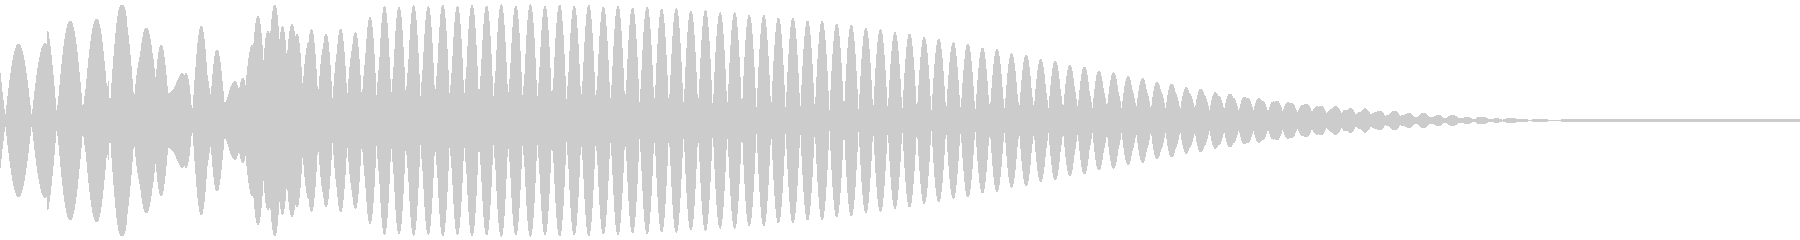 Puong (a gentle sound without a round treogle)'s unreproduced waveform